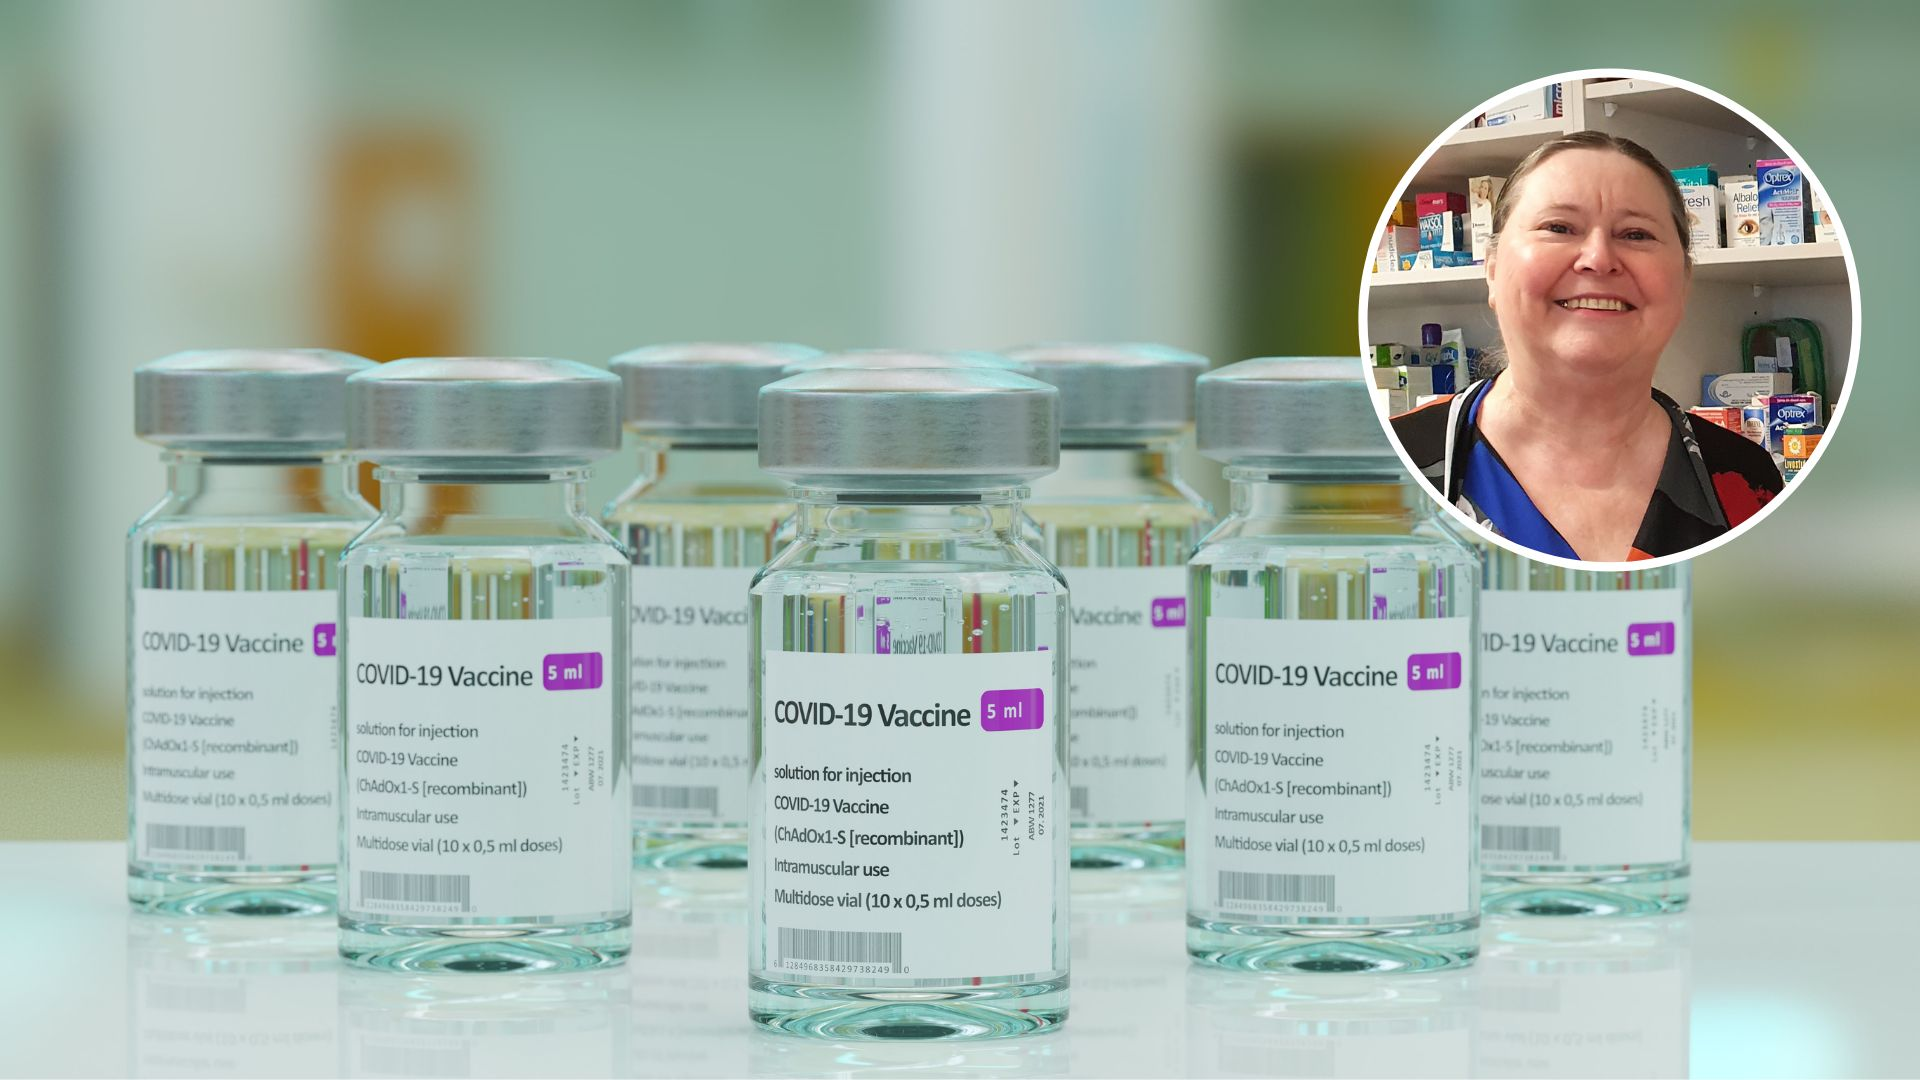 The law, ethics, personal choice and greater good - navigating COVID-19 vaccination